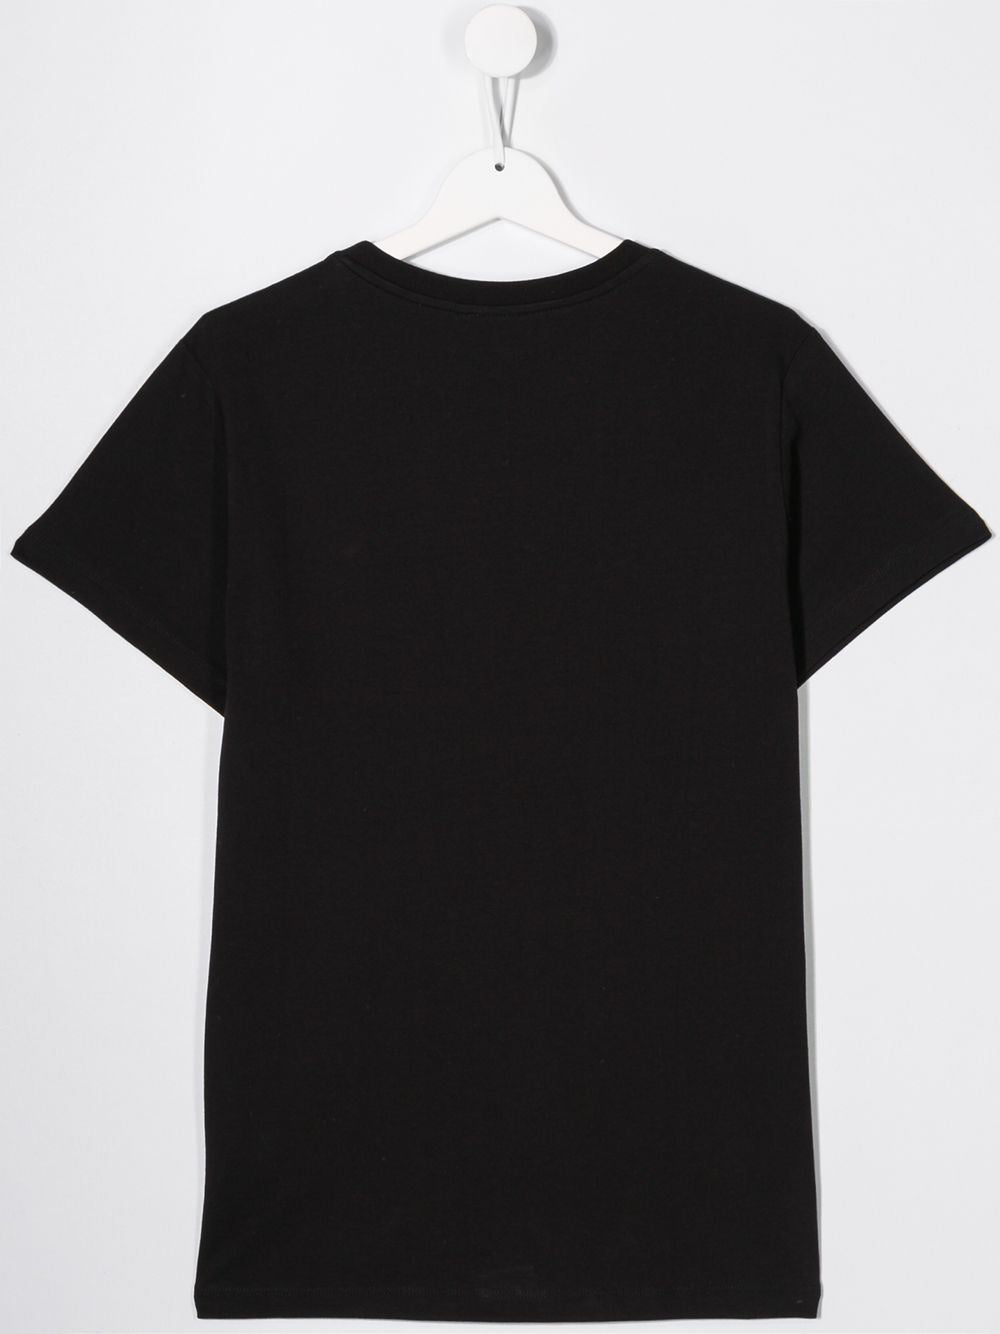 Lanvin Graphic T-Shirt - Maison De Fashion